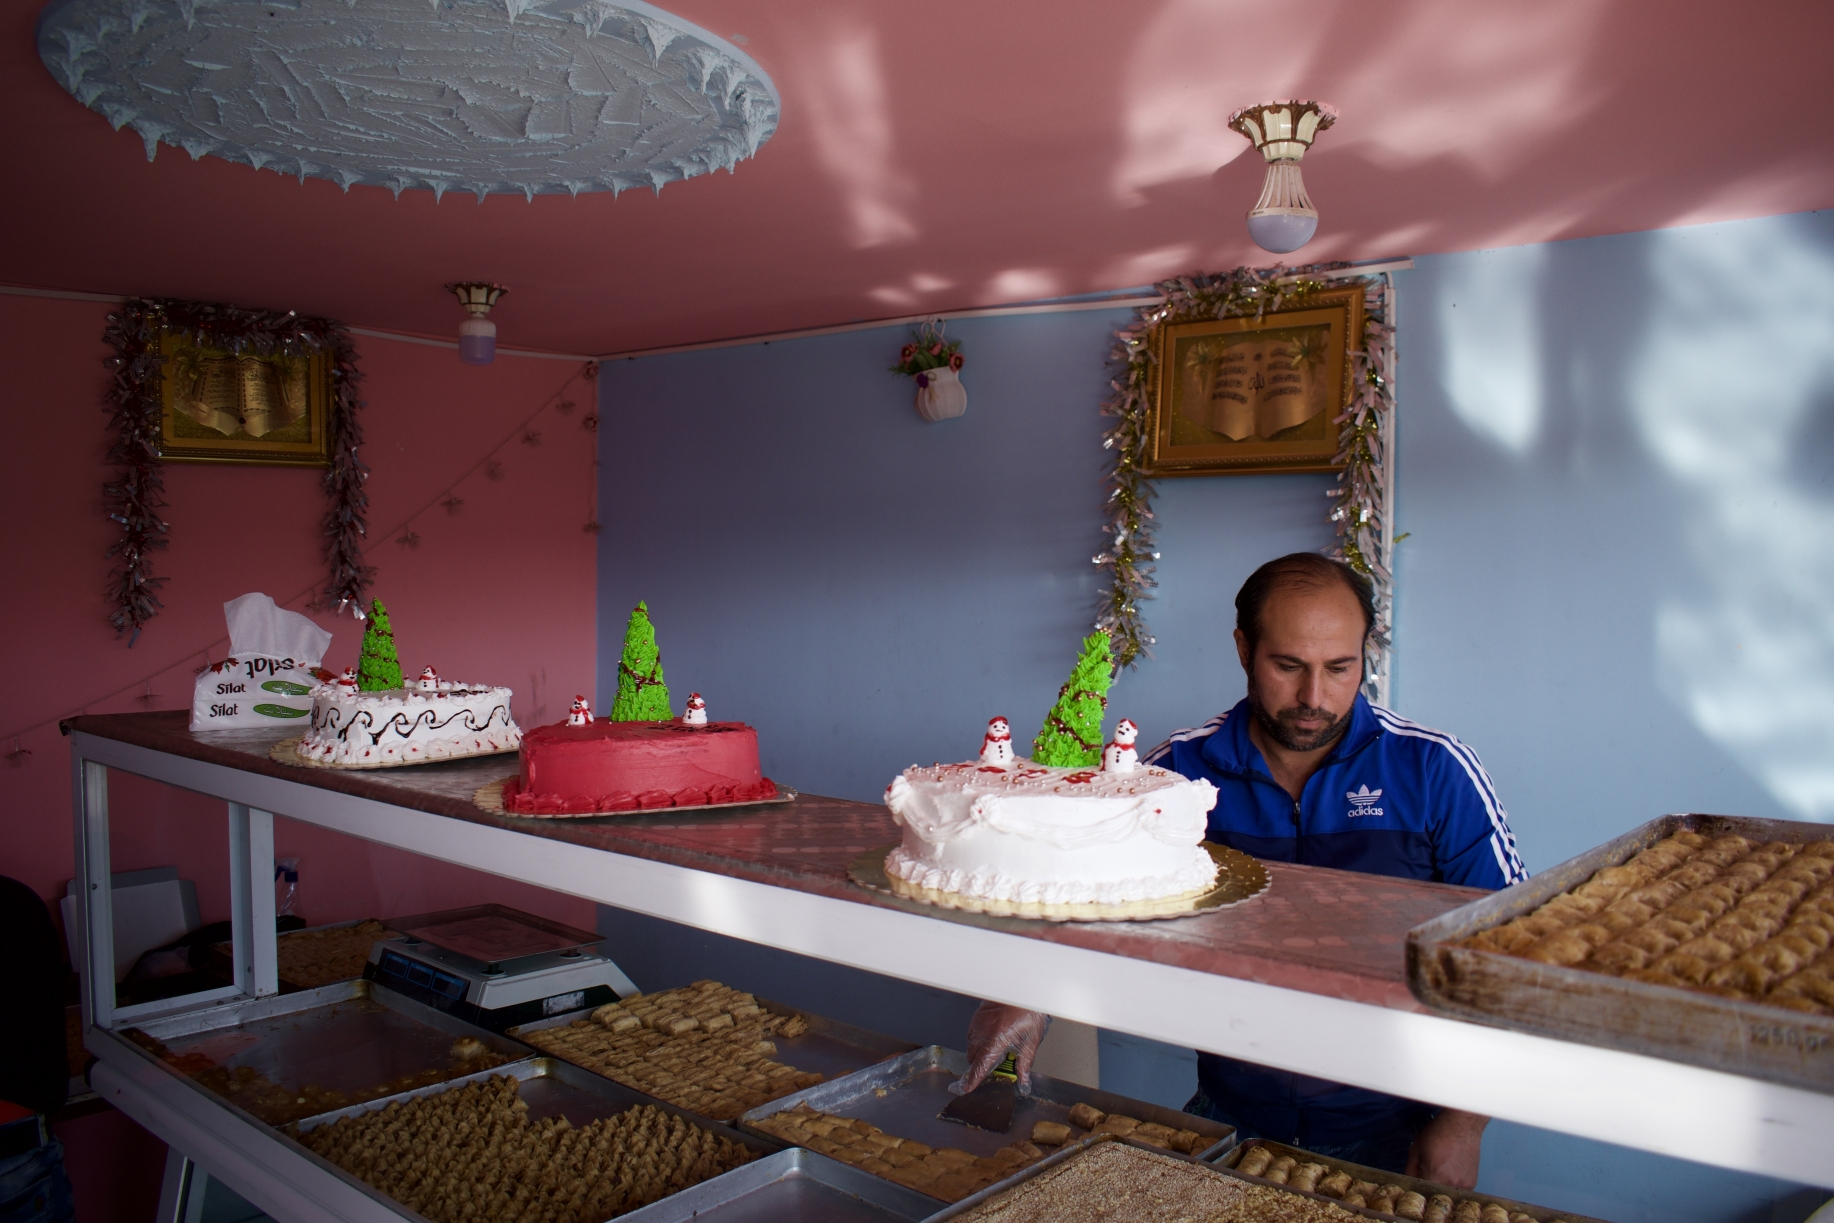 Supporting sweets producers in Syrian refugee camps